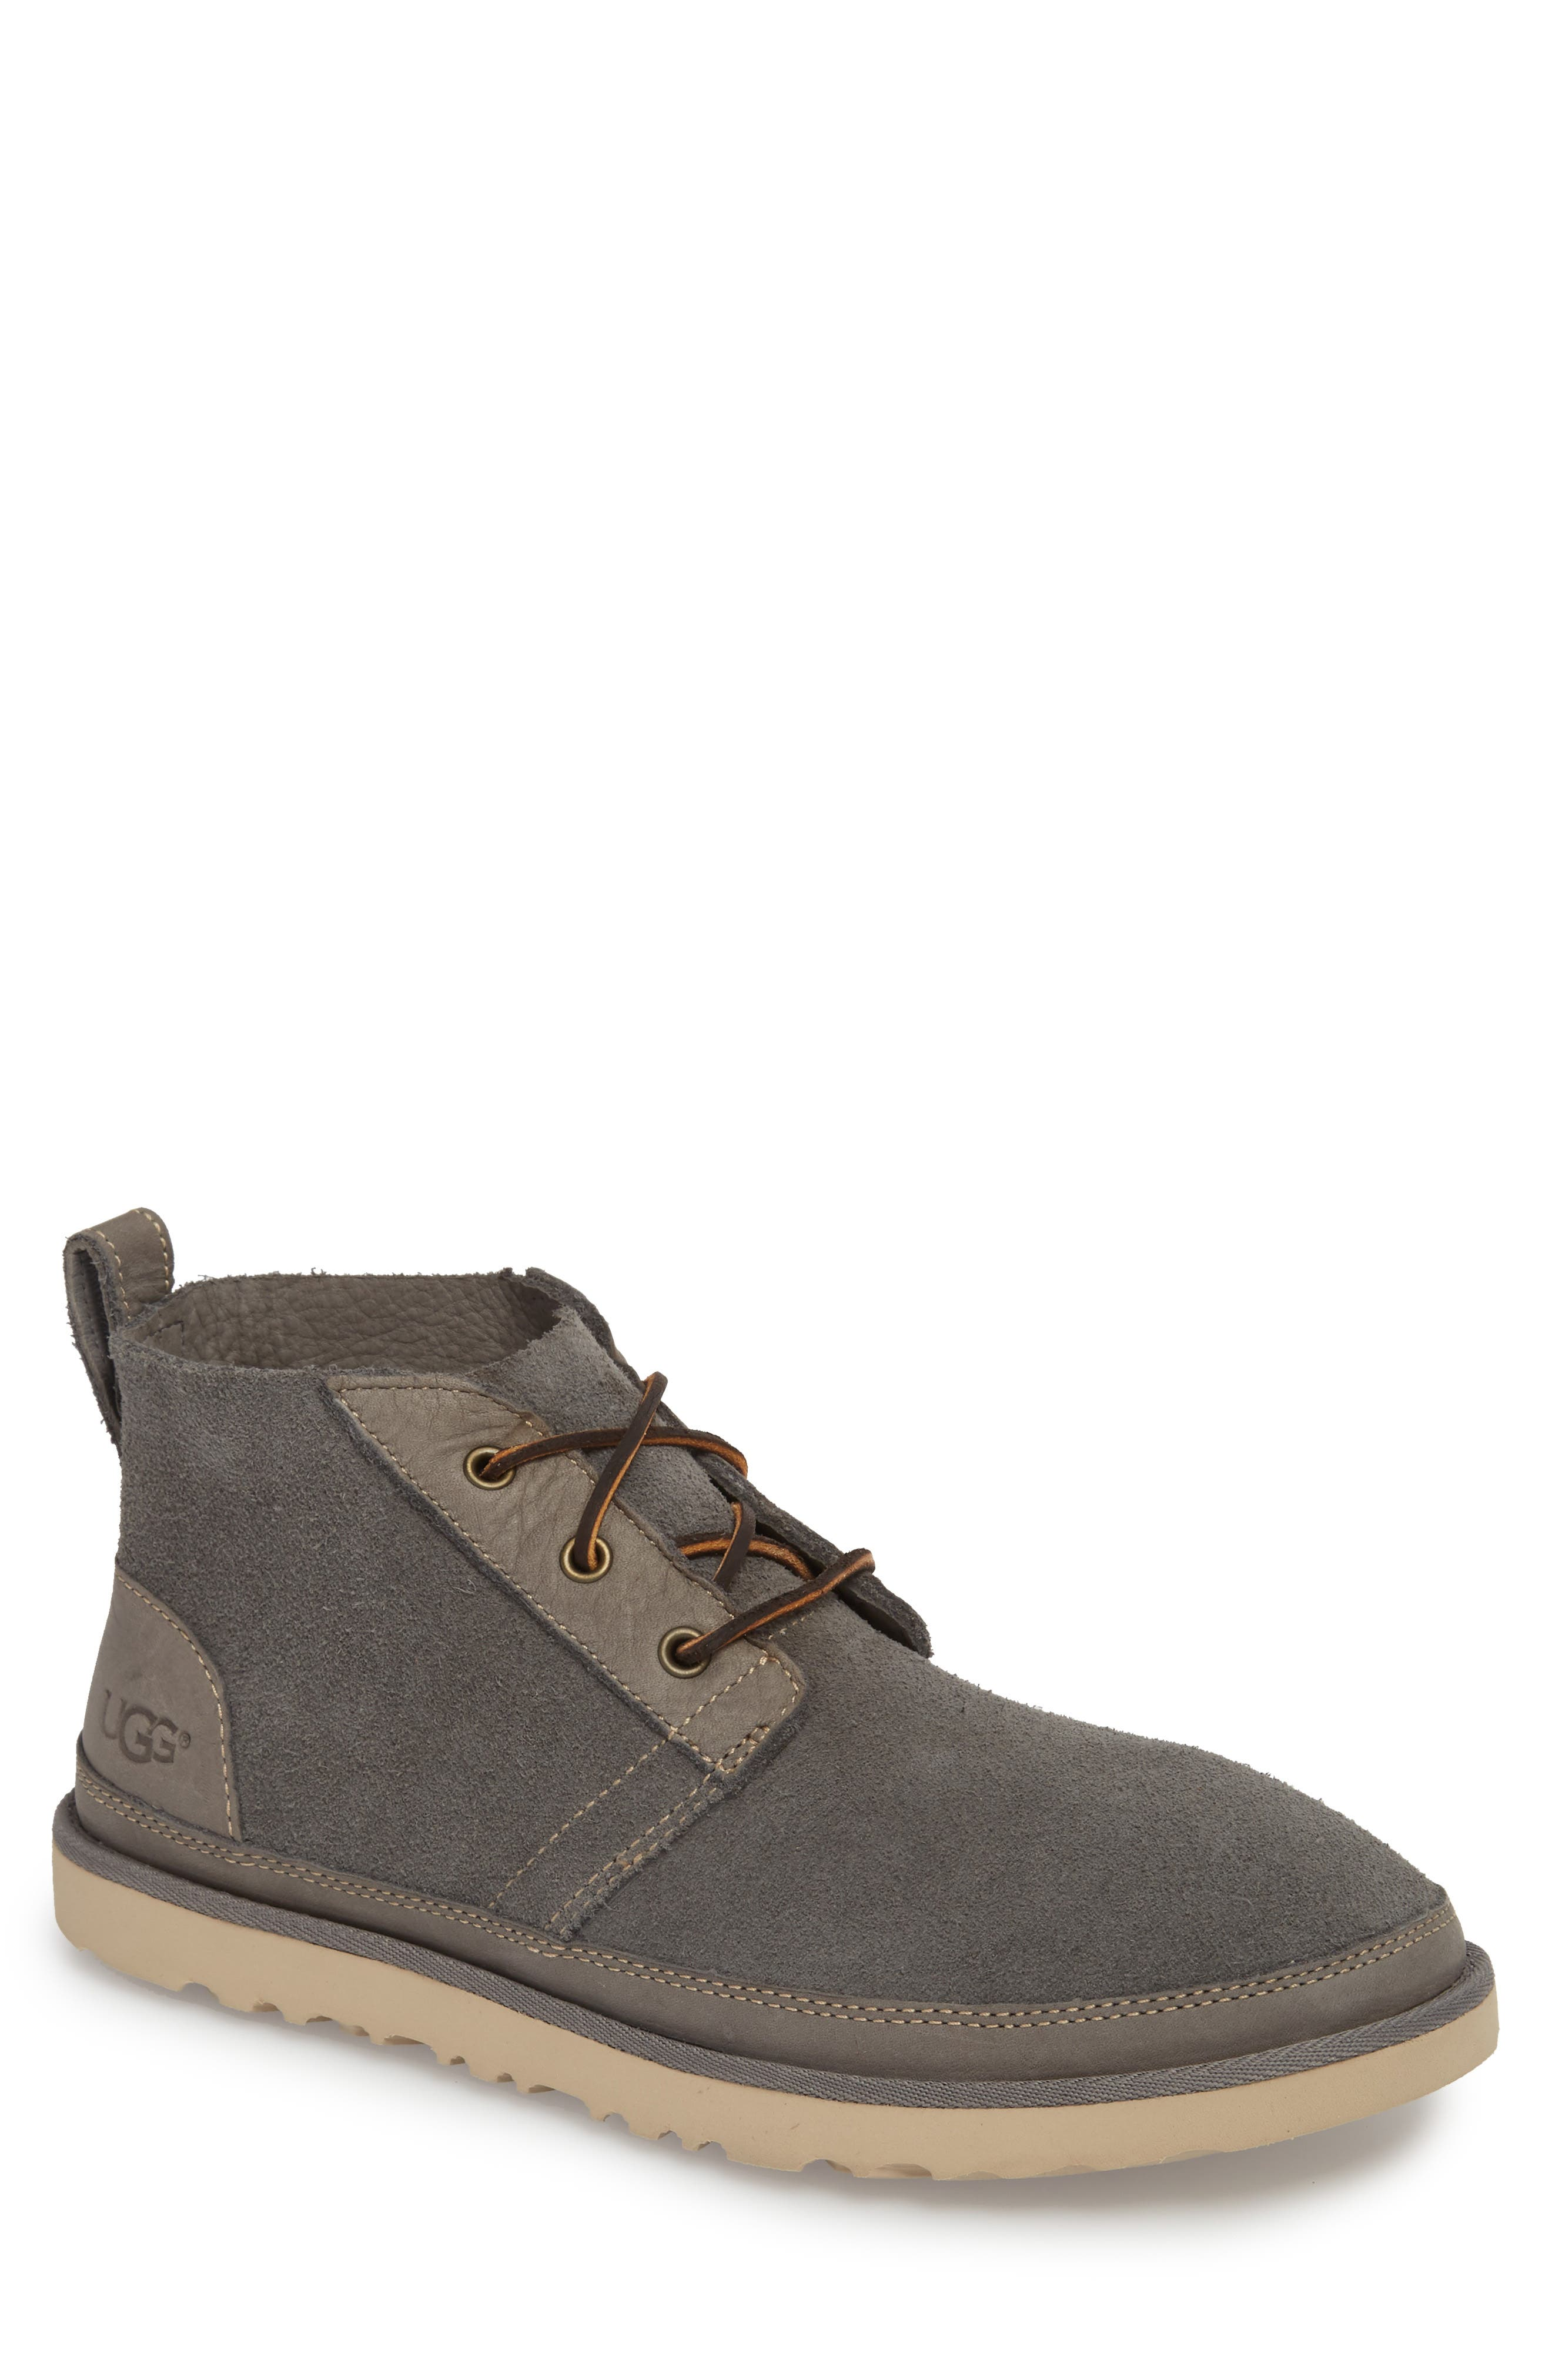 Neumel Unlined Chukka Boot,                             Main thumbnail 1, color,                             CHARCOAL LEATHER